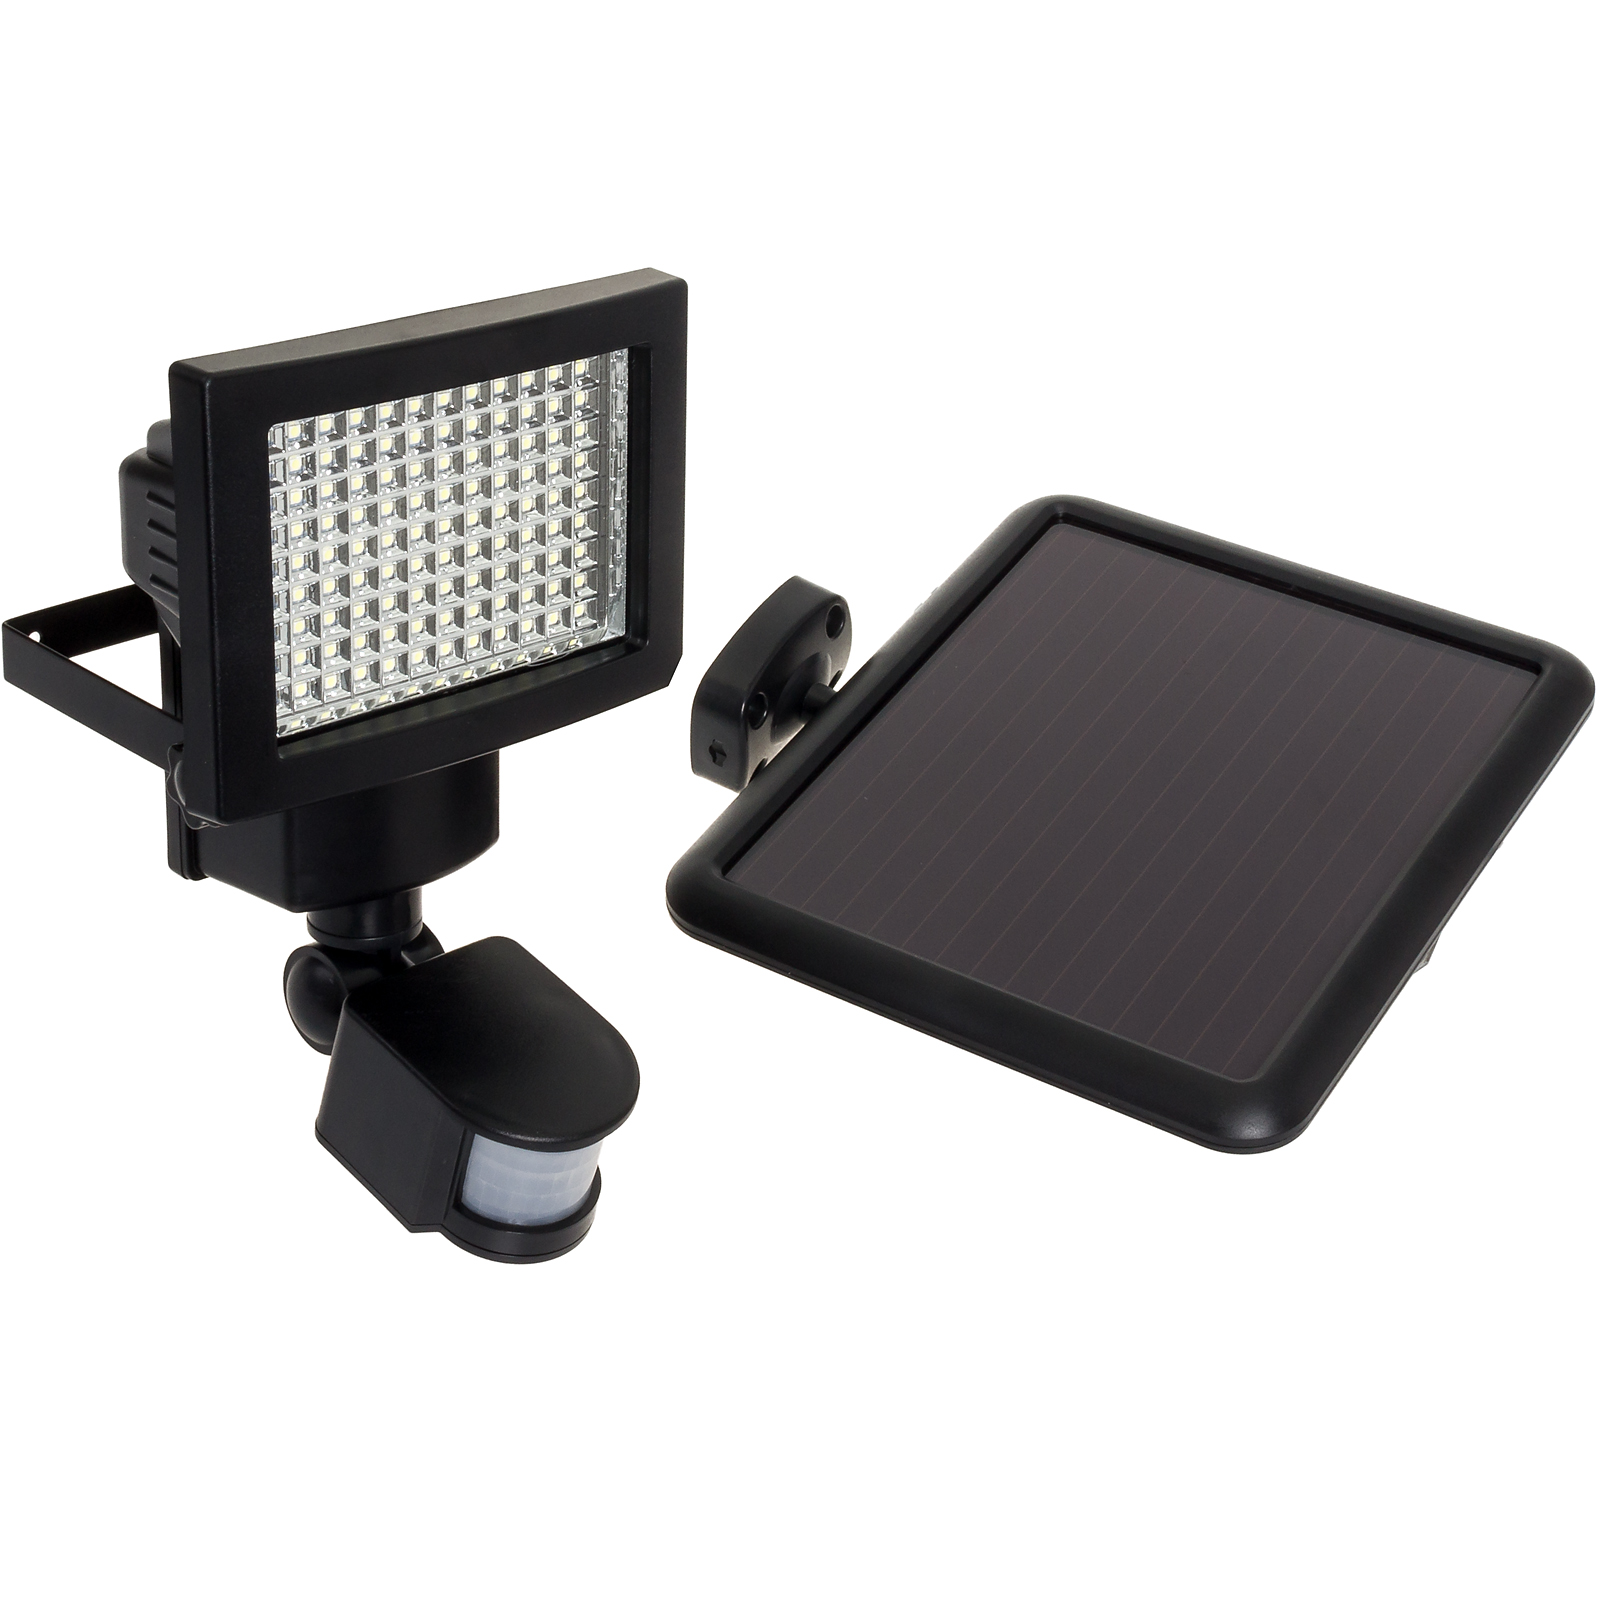 GREENLIGHTING Black 108 LED Solar Powered PIR Motion Sensor Security Flood Light